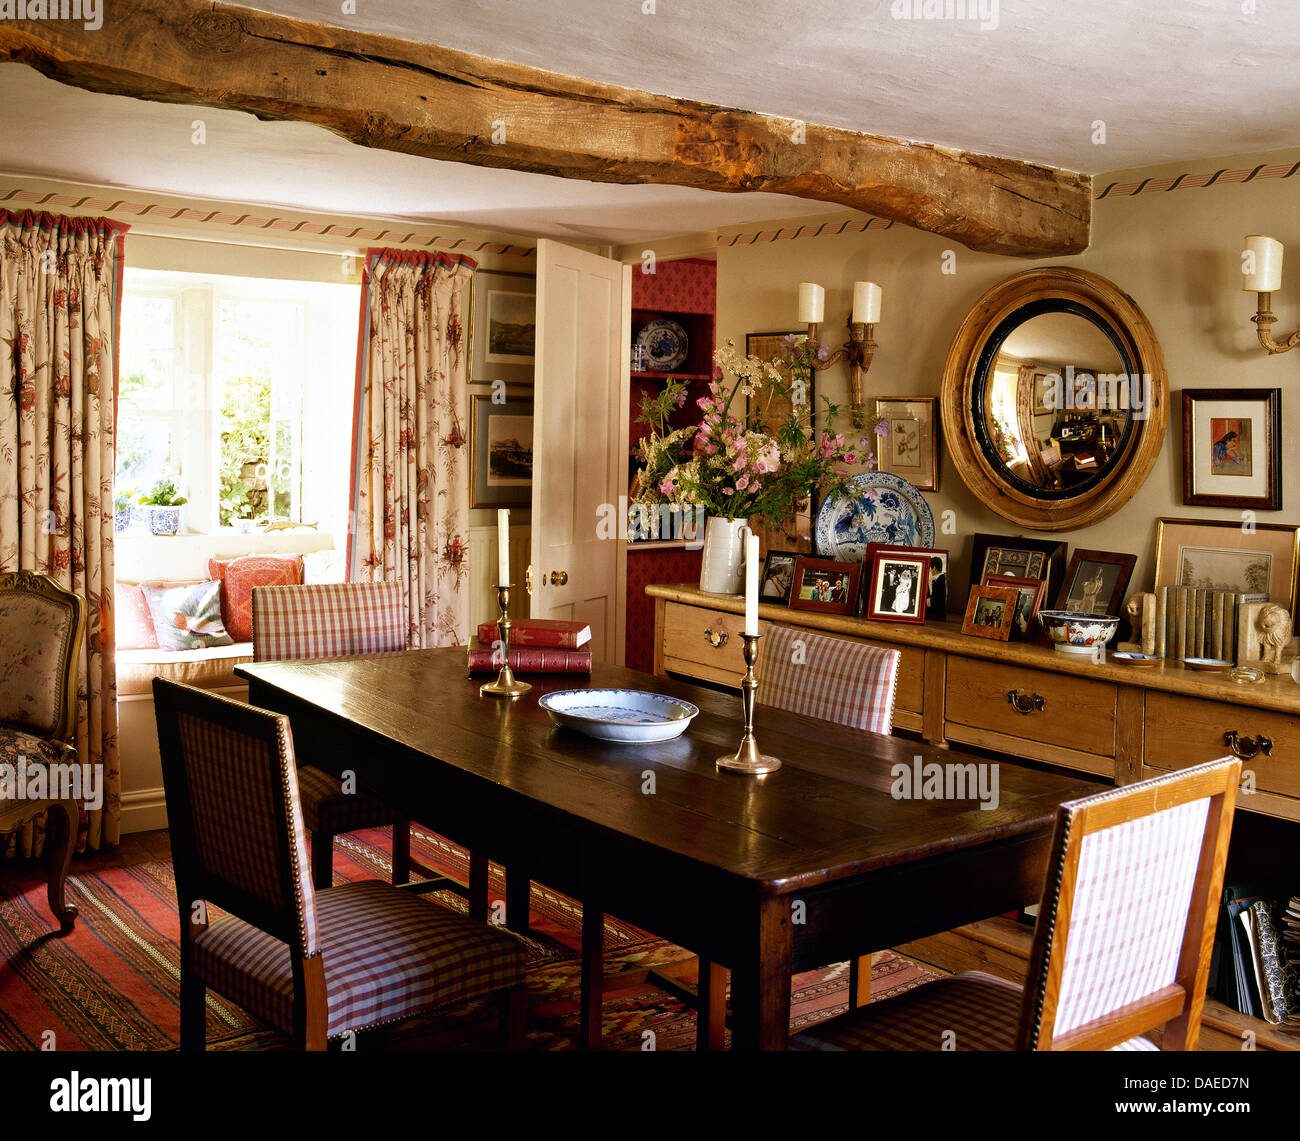 Upholstered chairs at antique oak table in cottage dining room with